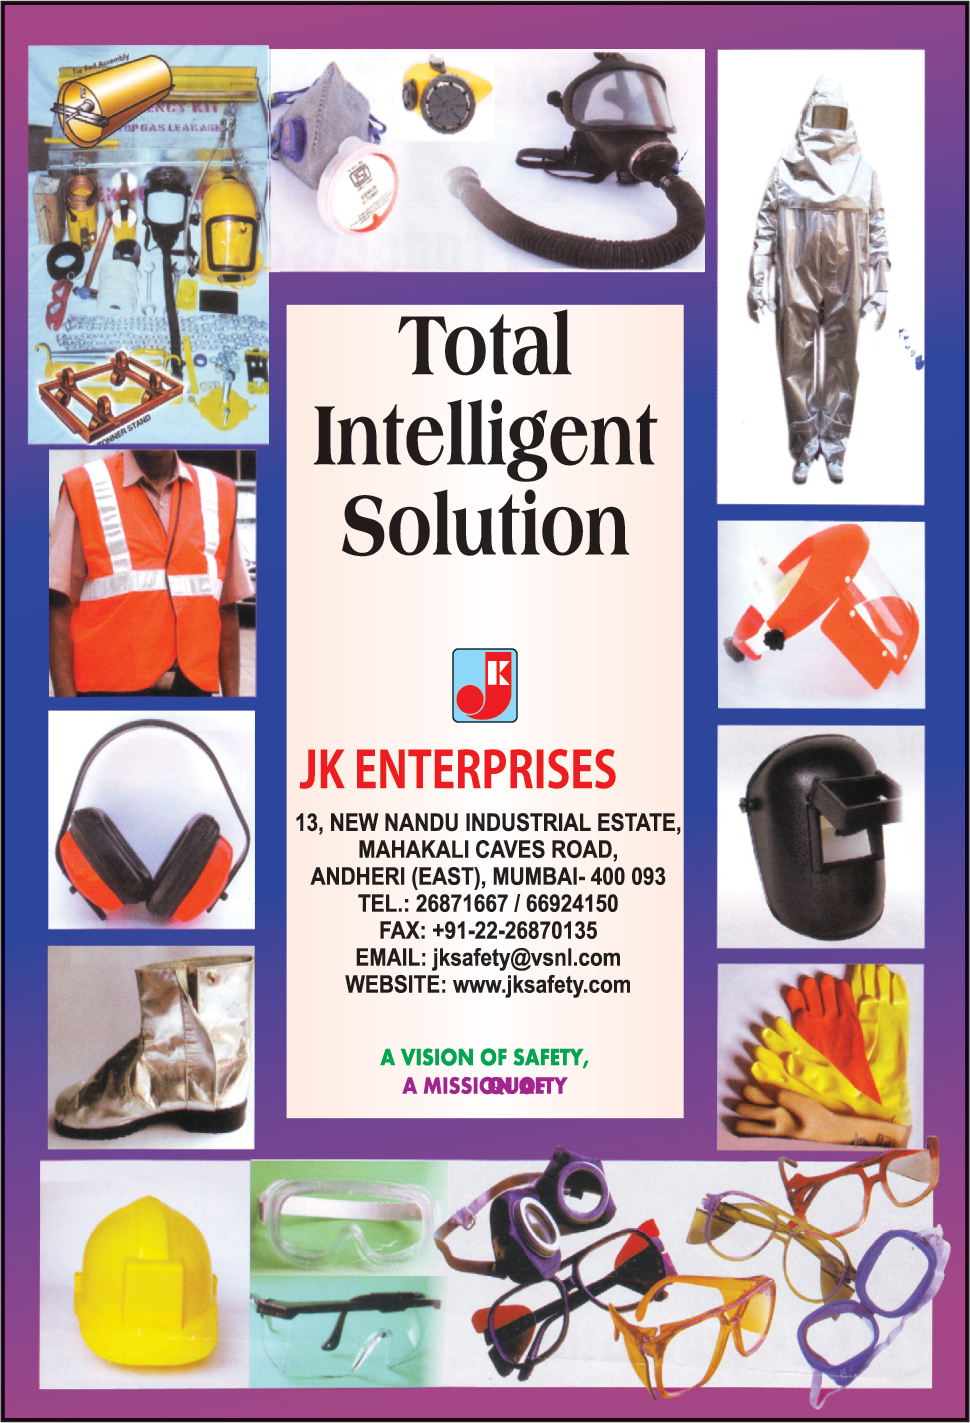 Personal Protective Equipments, Safety Products, Safety Helmets, Safety Gloves, Safety Goggles, Safety Shoes, Ear Muffs, Reflective Jackets, Reflective Vests, PVC Suits, Asbestos Suits, Emergency kit Gas Leakage